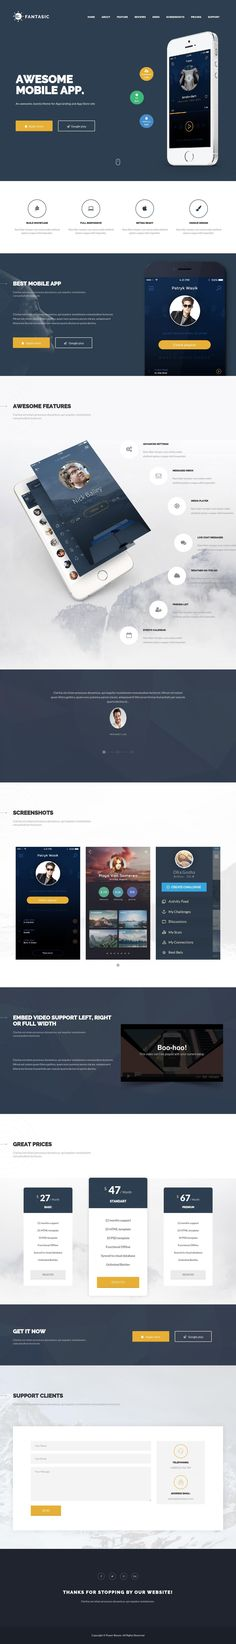 Fantasic – Multipurpose Joomla Landing Page Template is a responsive, clean and modern designed #Joomla #template for landing pages.